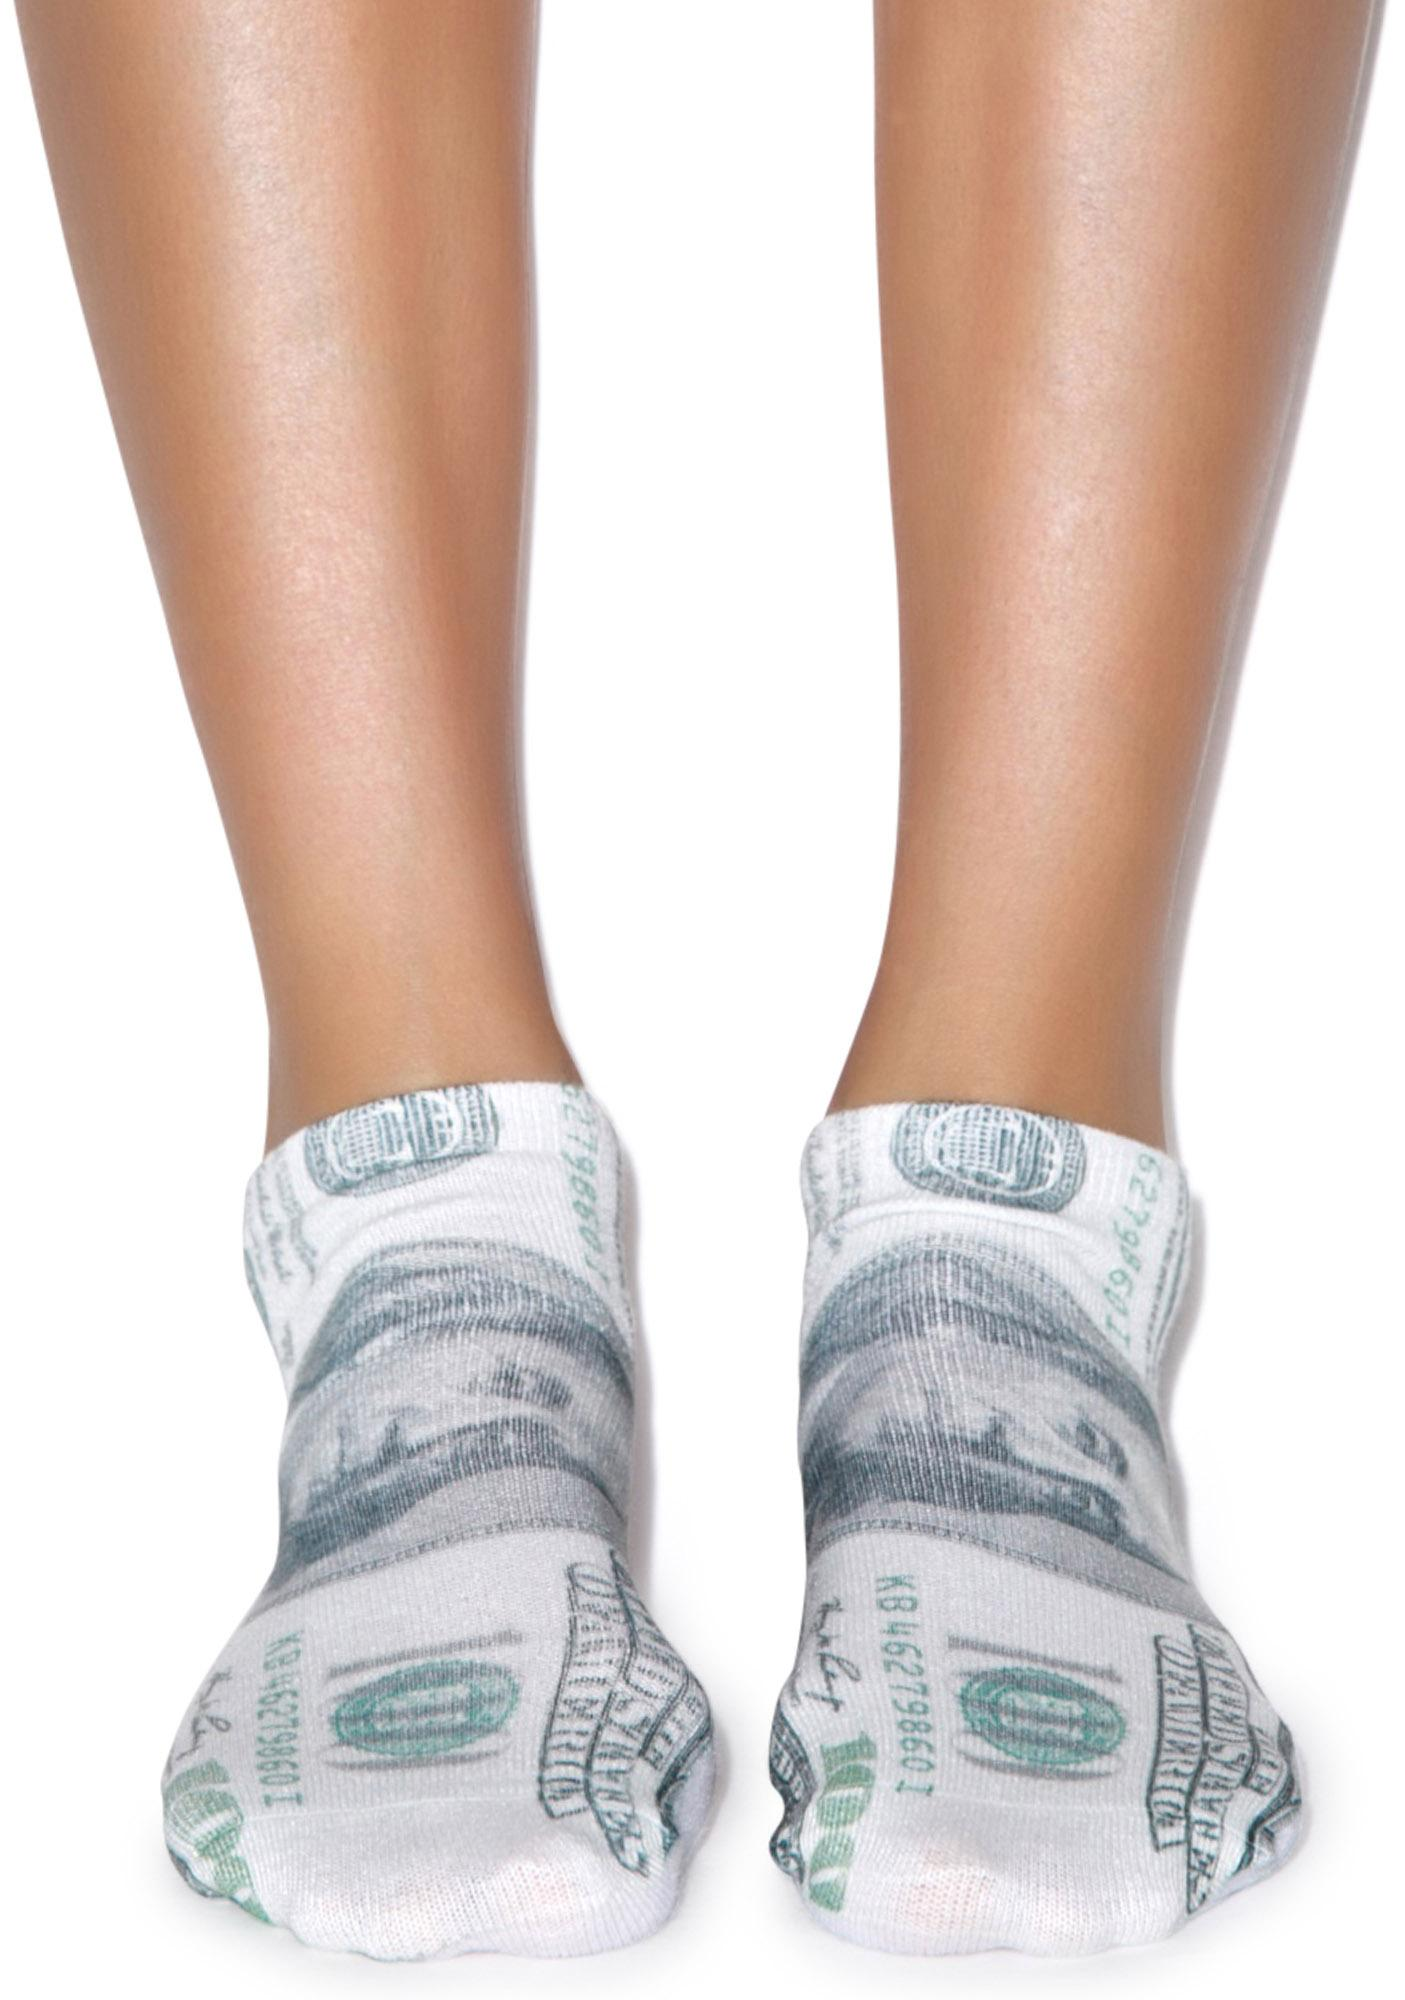 All About The Benjamins Ankle Socks